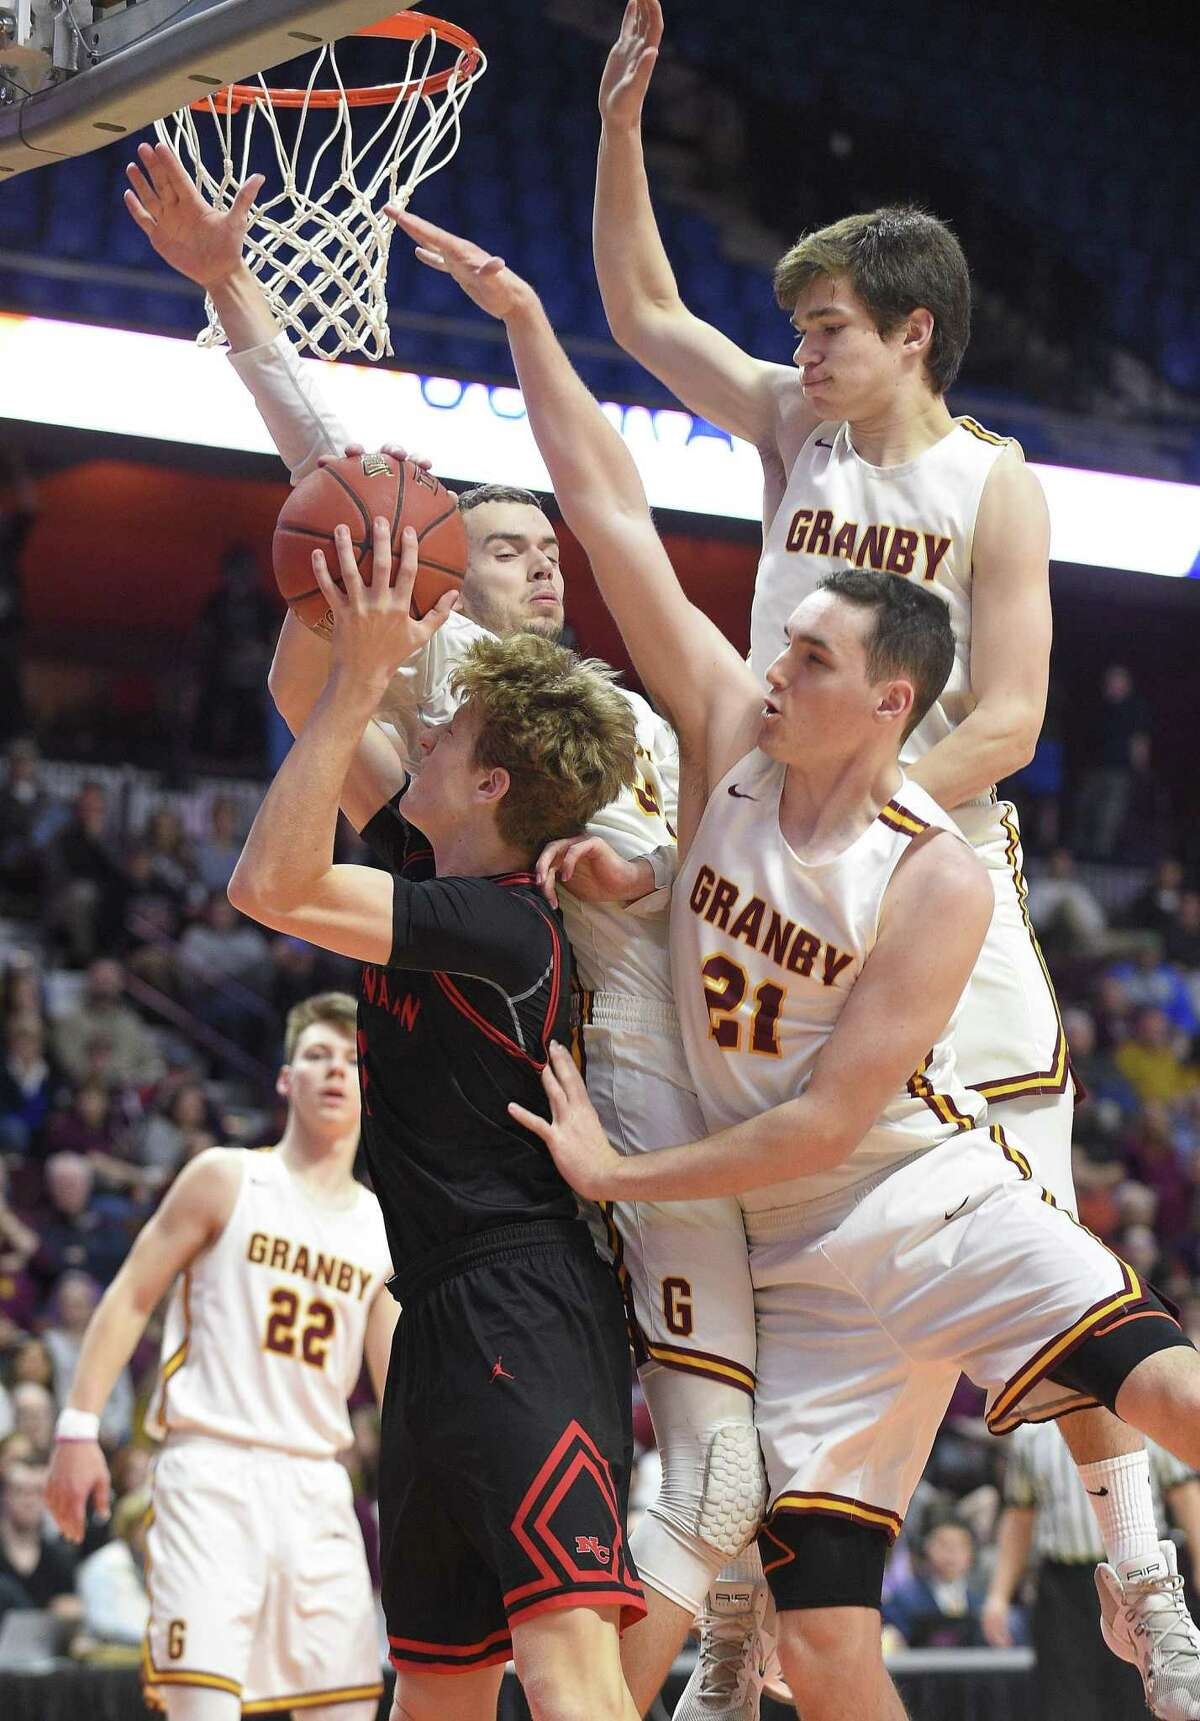 New Canaan's Matthew Brand (1) is fouled by Gramby players on his shot in the third quarter on Saturday.